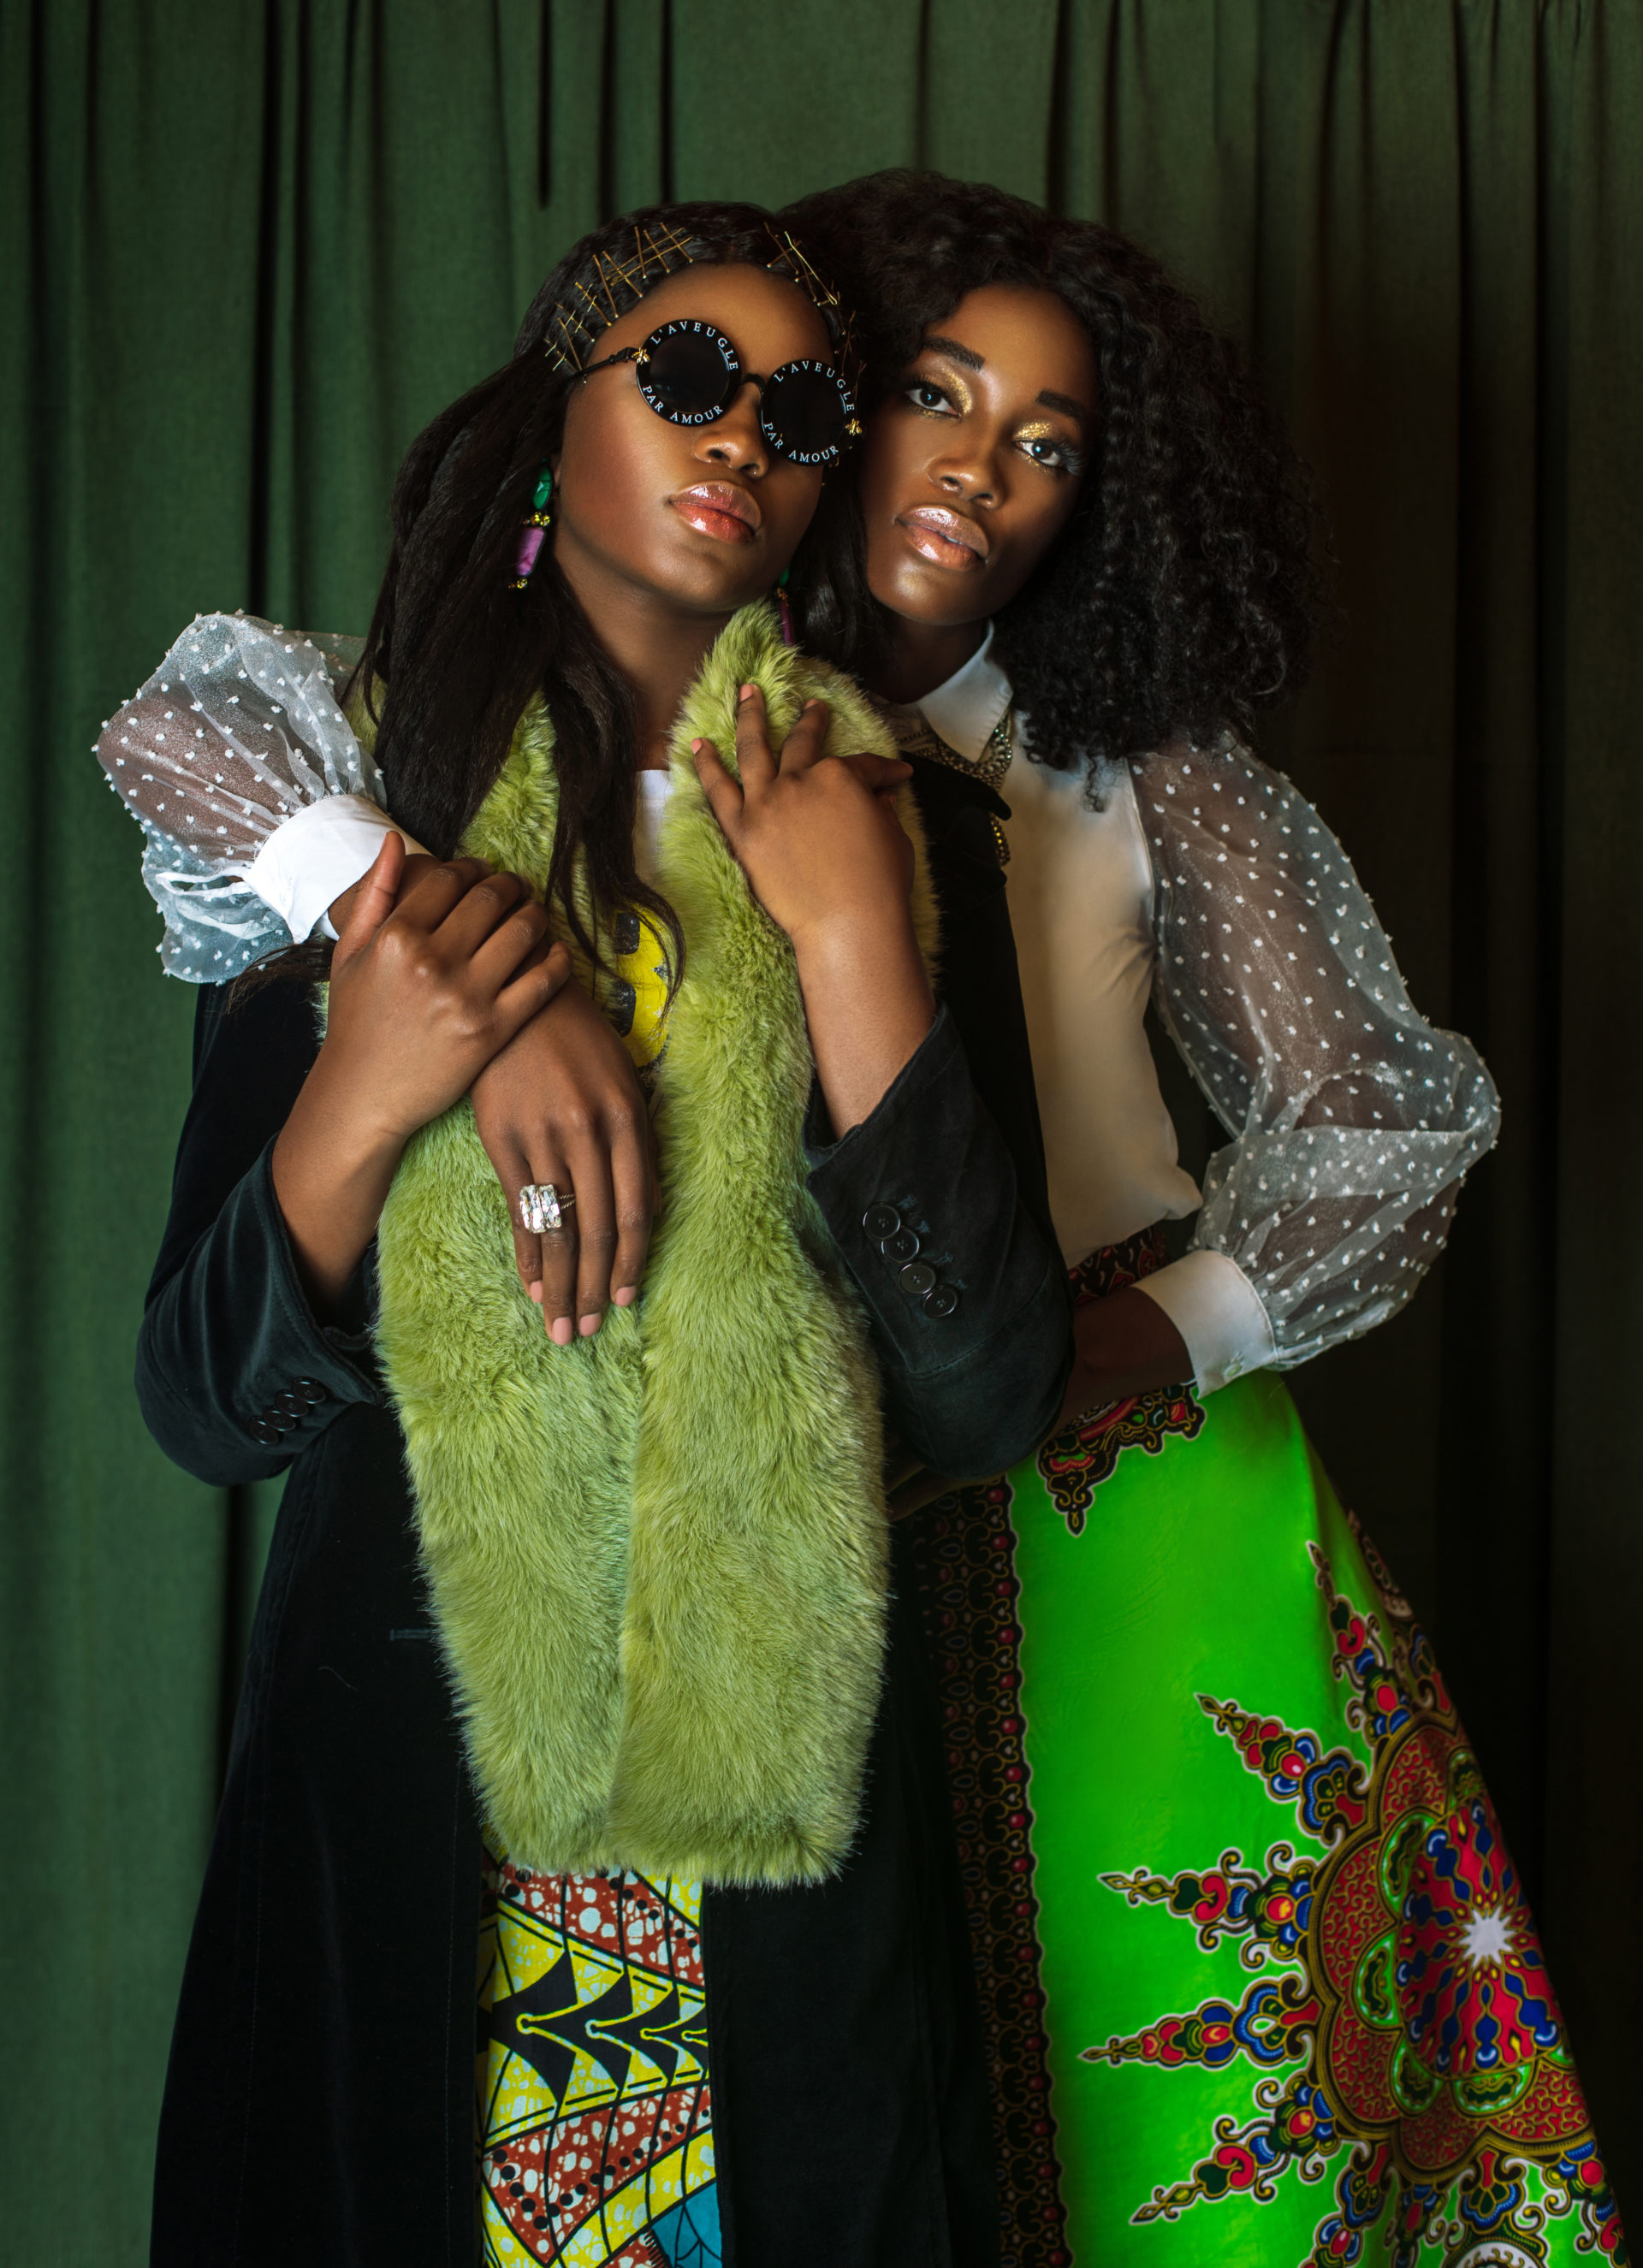 Two Sensual Black Ladies in African Designer Clothing